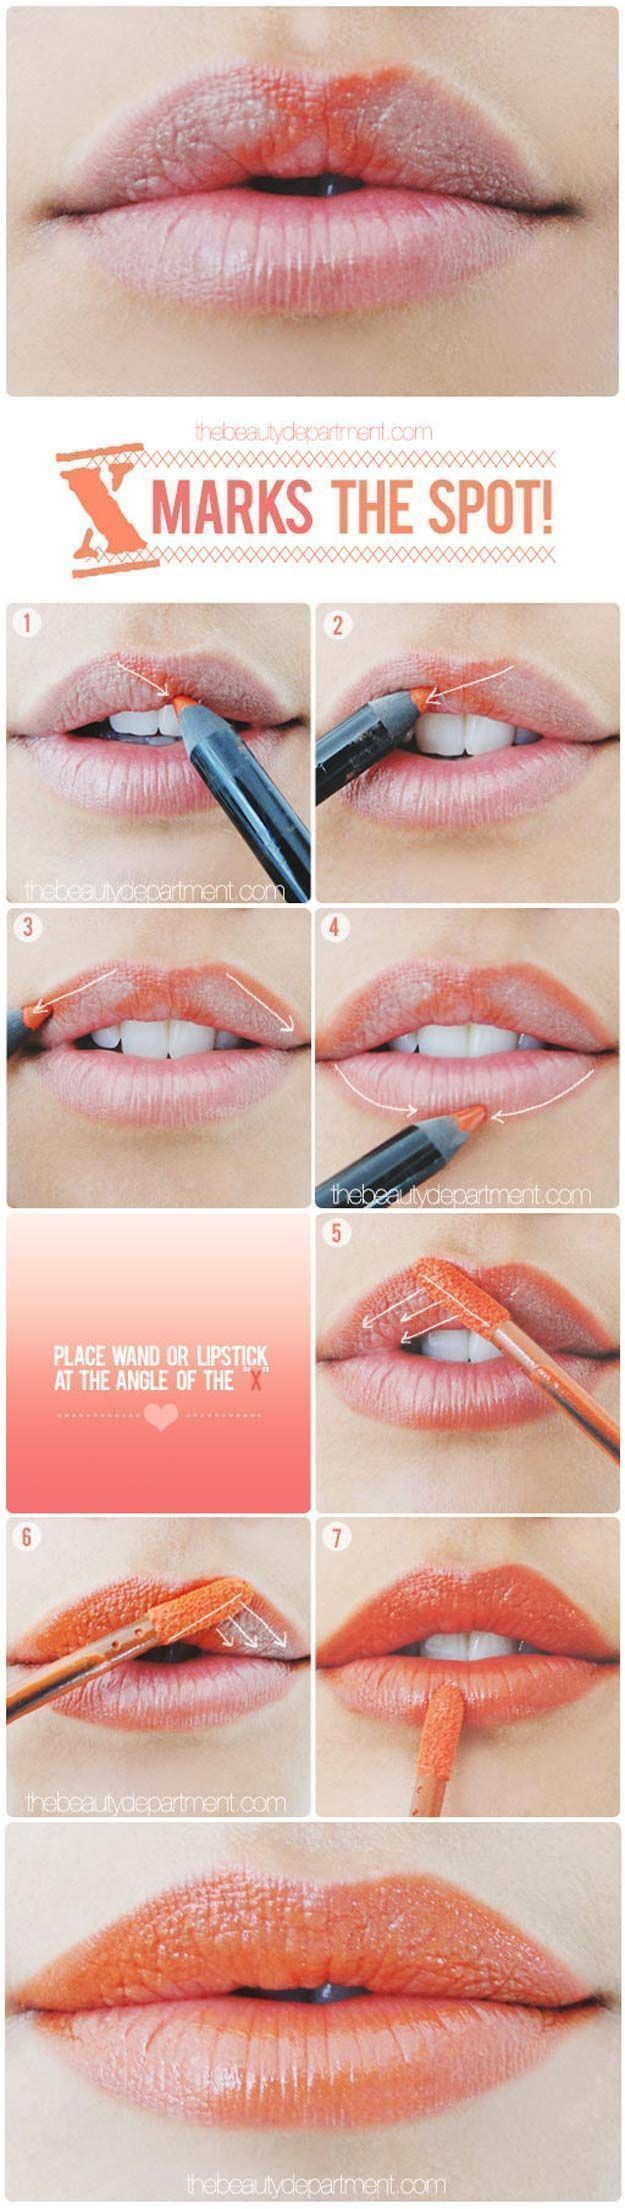 Best Makeup Tutorials for Teens -A Little Lip Trick - Easy Makeup Ideas for Begi...